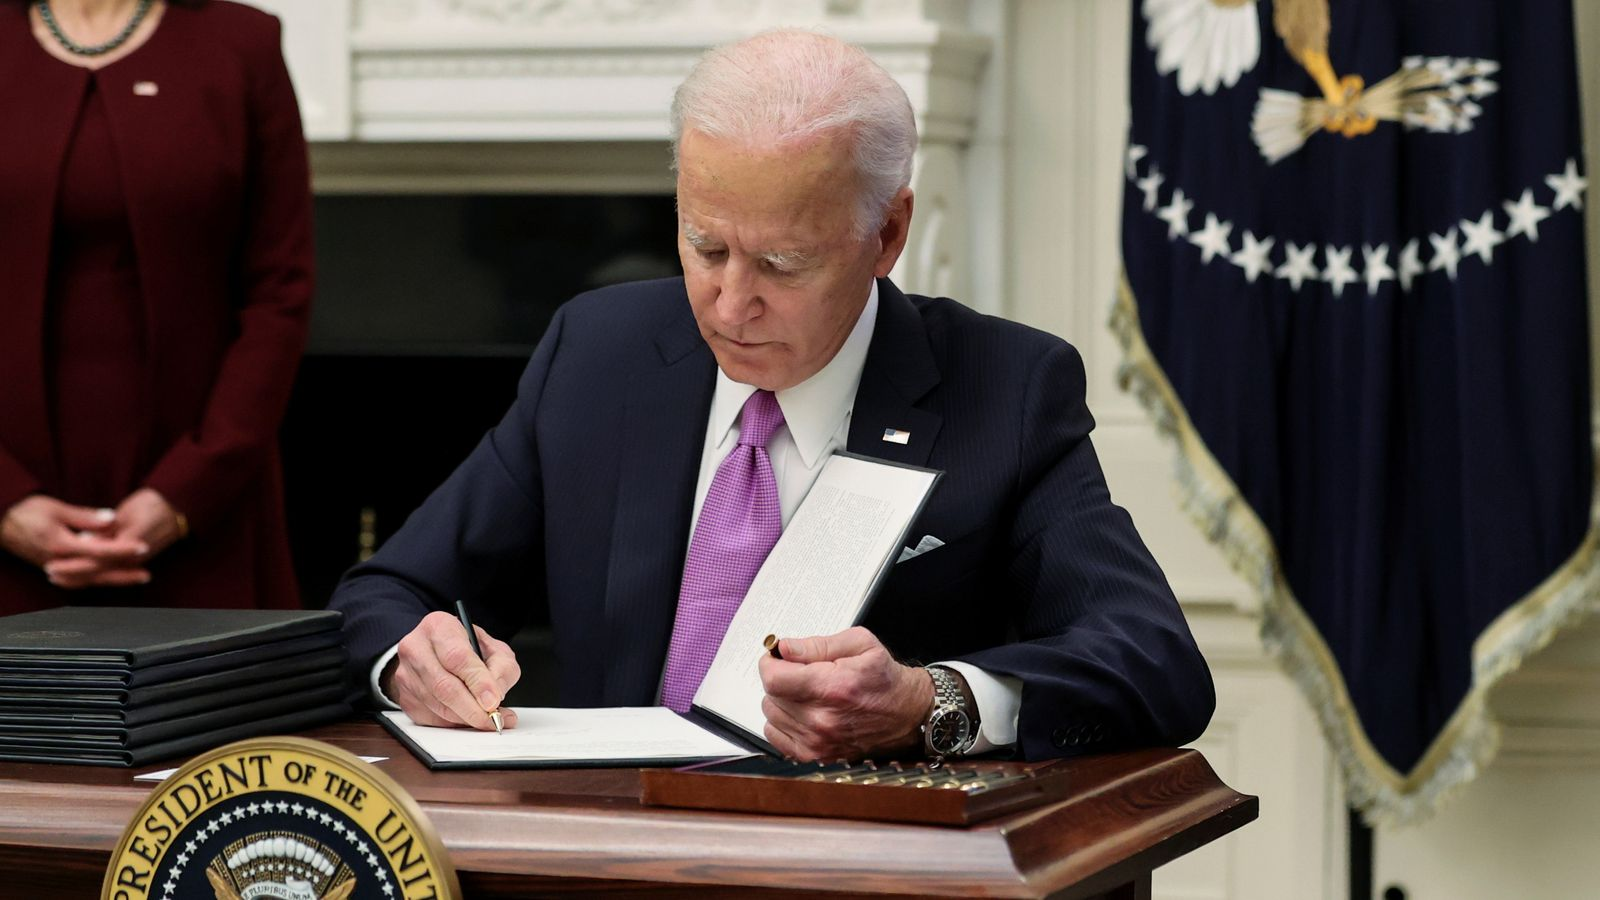 Joe Biden signs an executive order as part of his administration's plans to fight the coronavirus disease